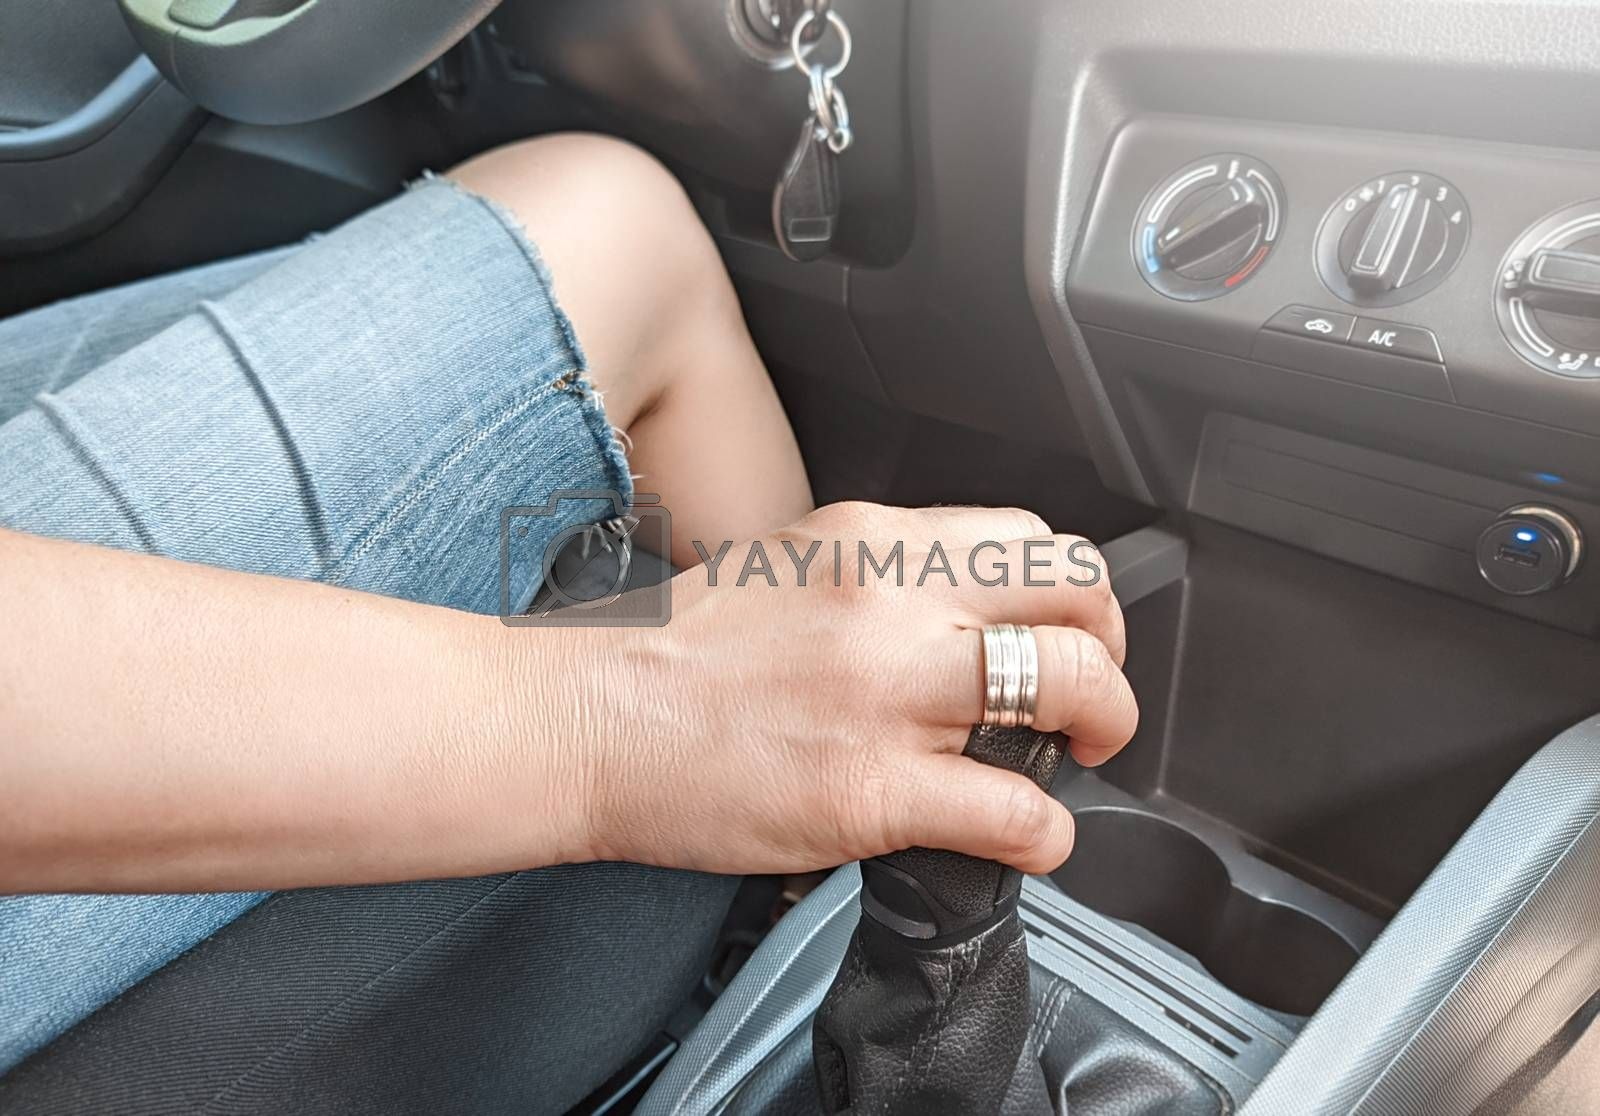 Cropped shot of a woman sitting in a car with her hand on gearbox copyspace driving learning confidence travelling transportation vehicle automotive industry.